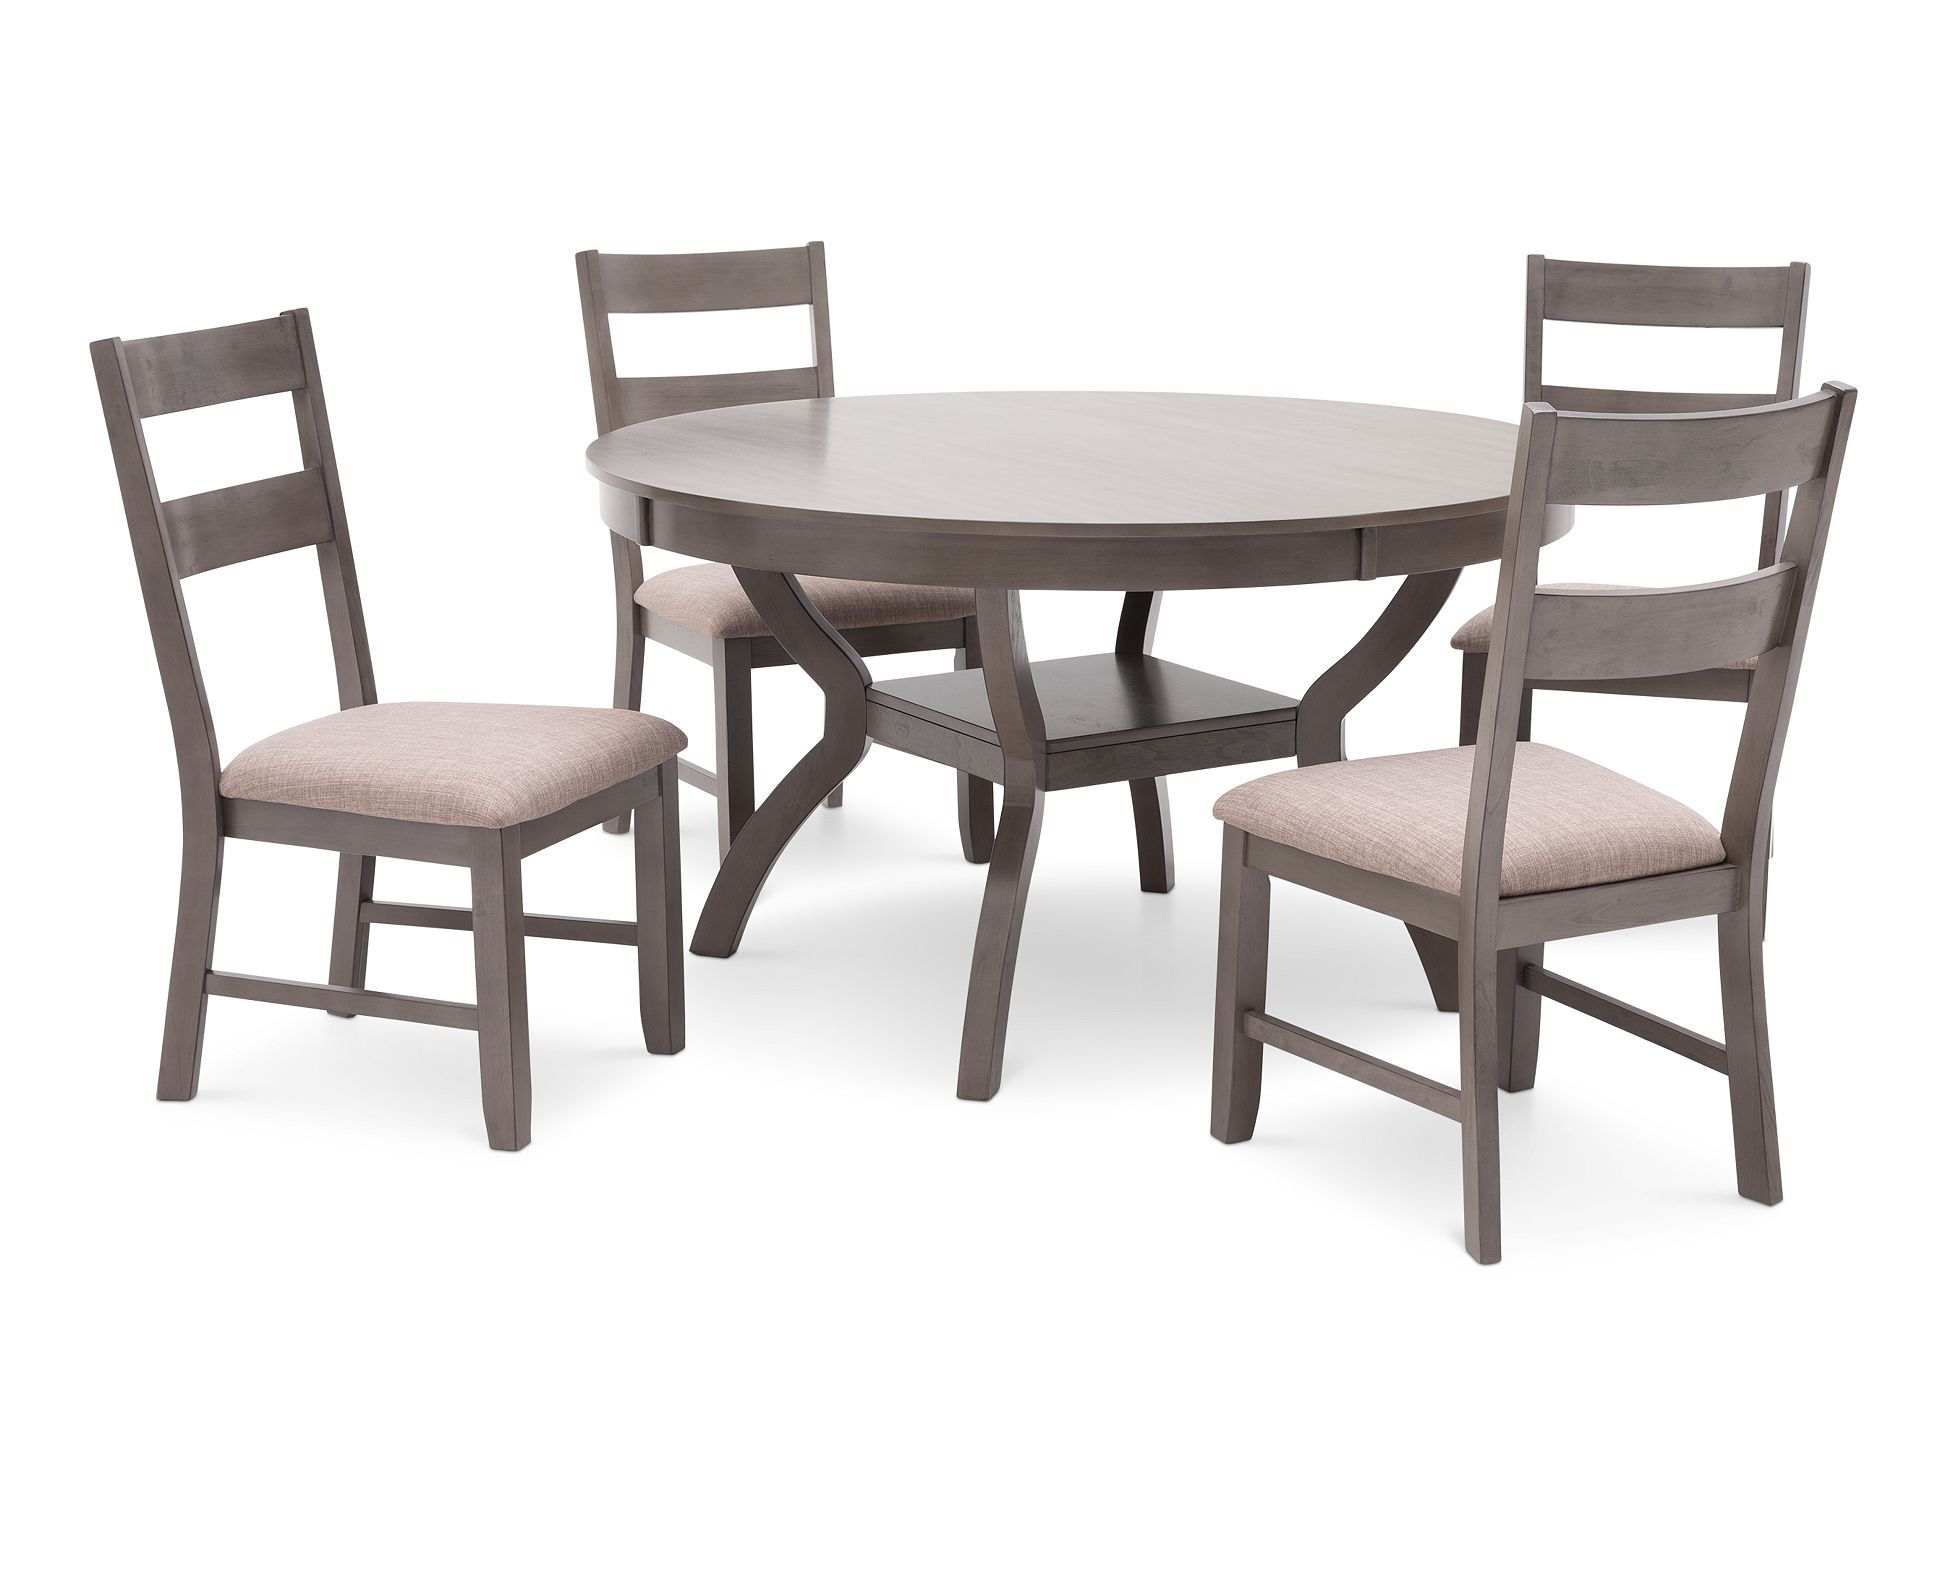 Grigio 5 Pc Dining Room Set Is Streamlined With Contemporary